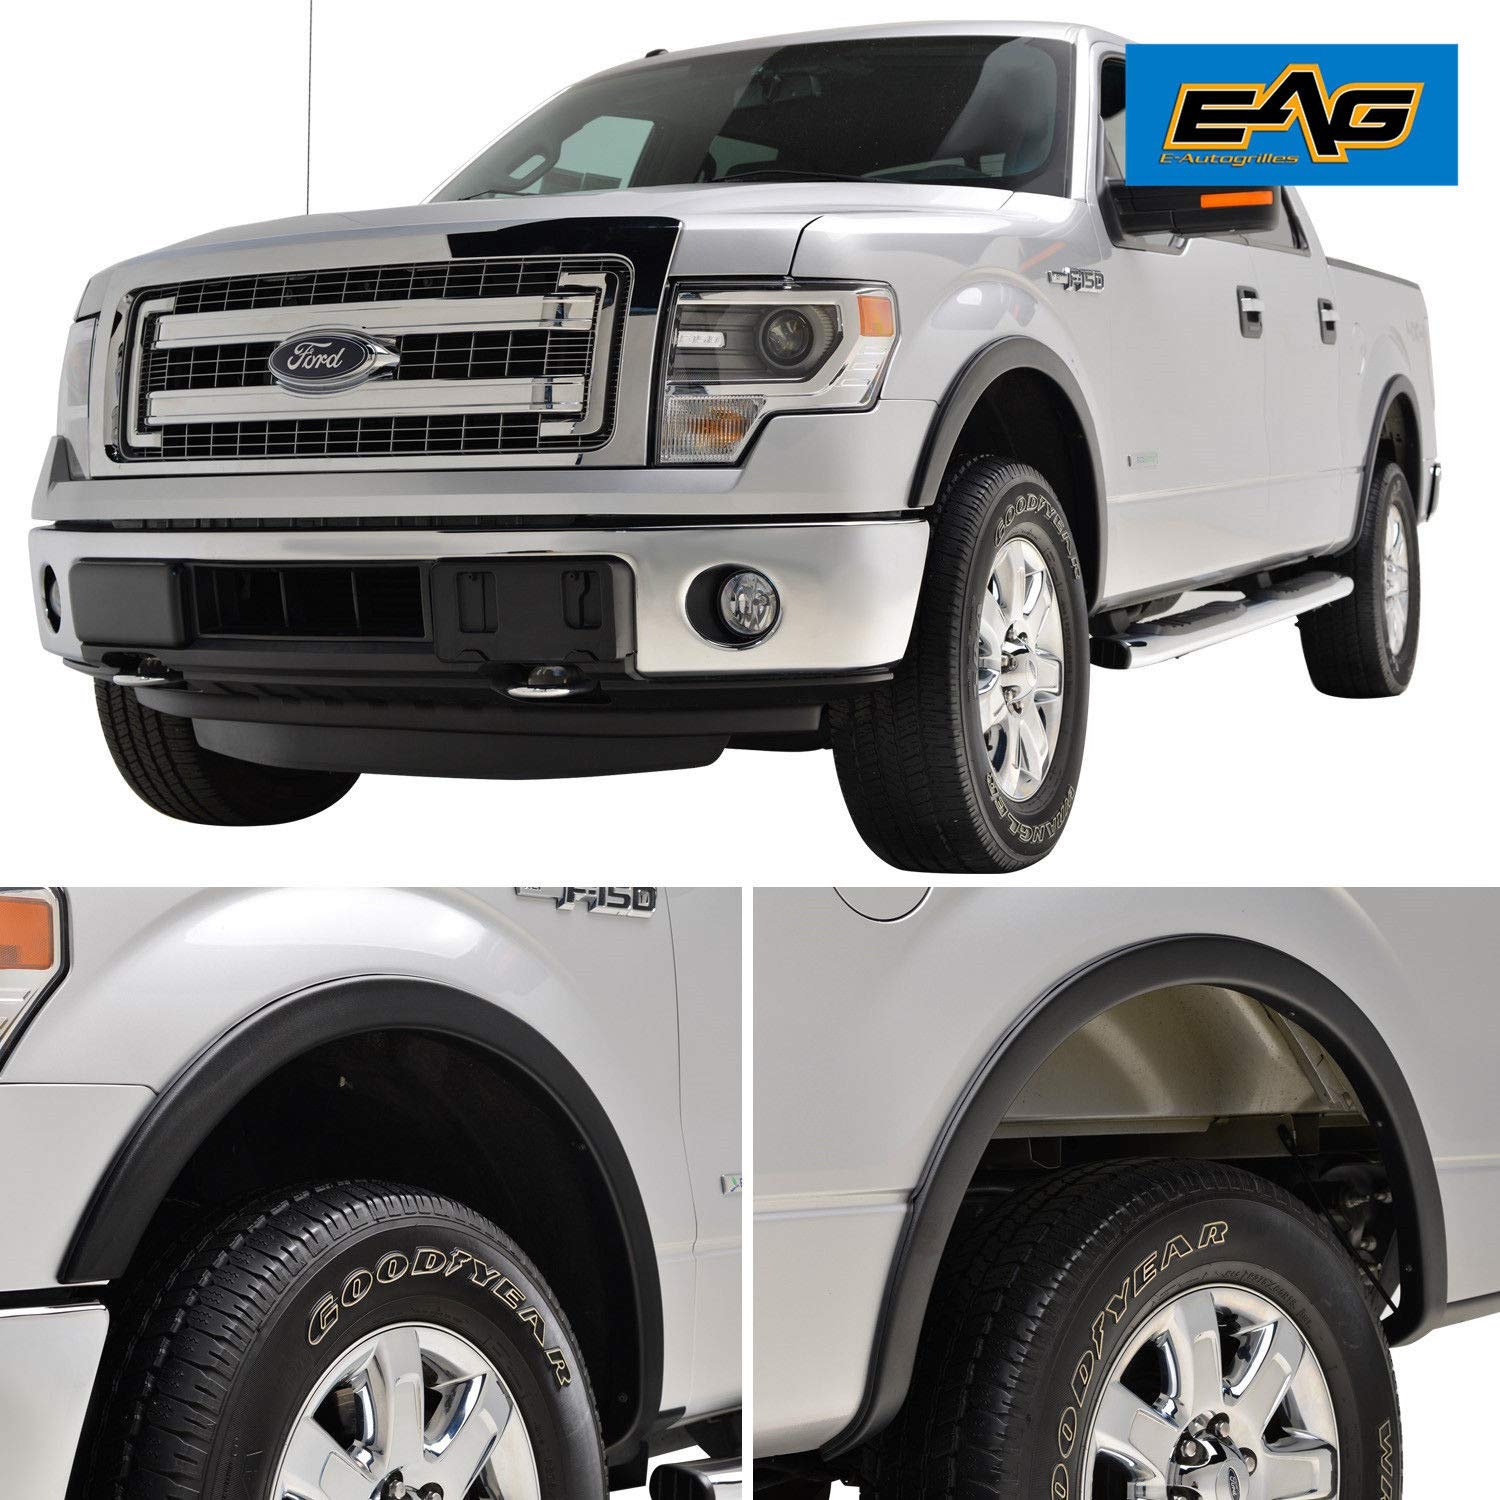 EAG Fender Flares Satin Black Styline Series Fit for 09-14 Ford F-150